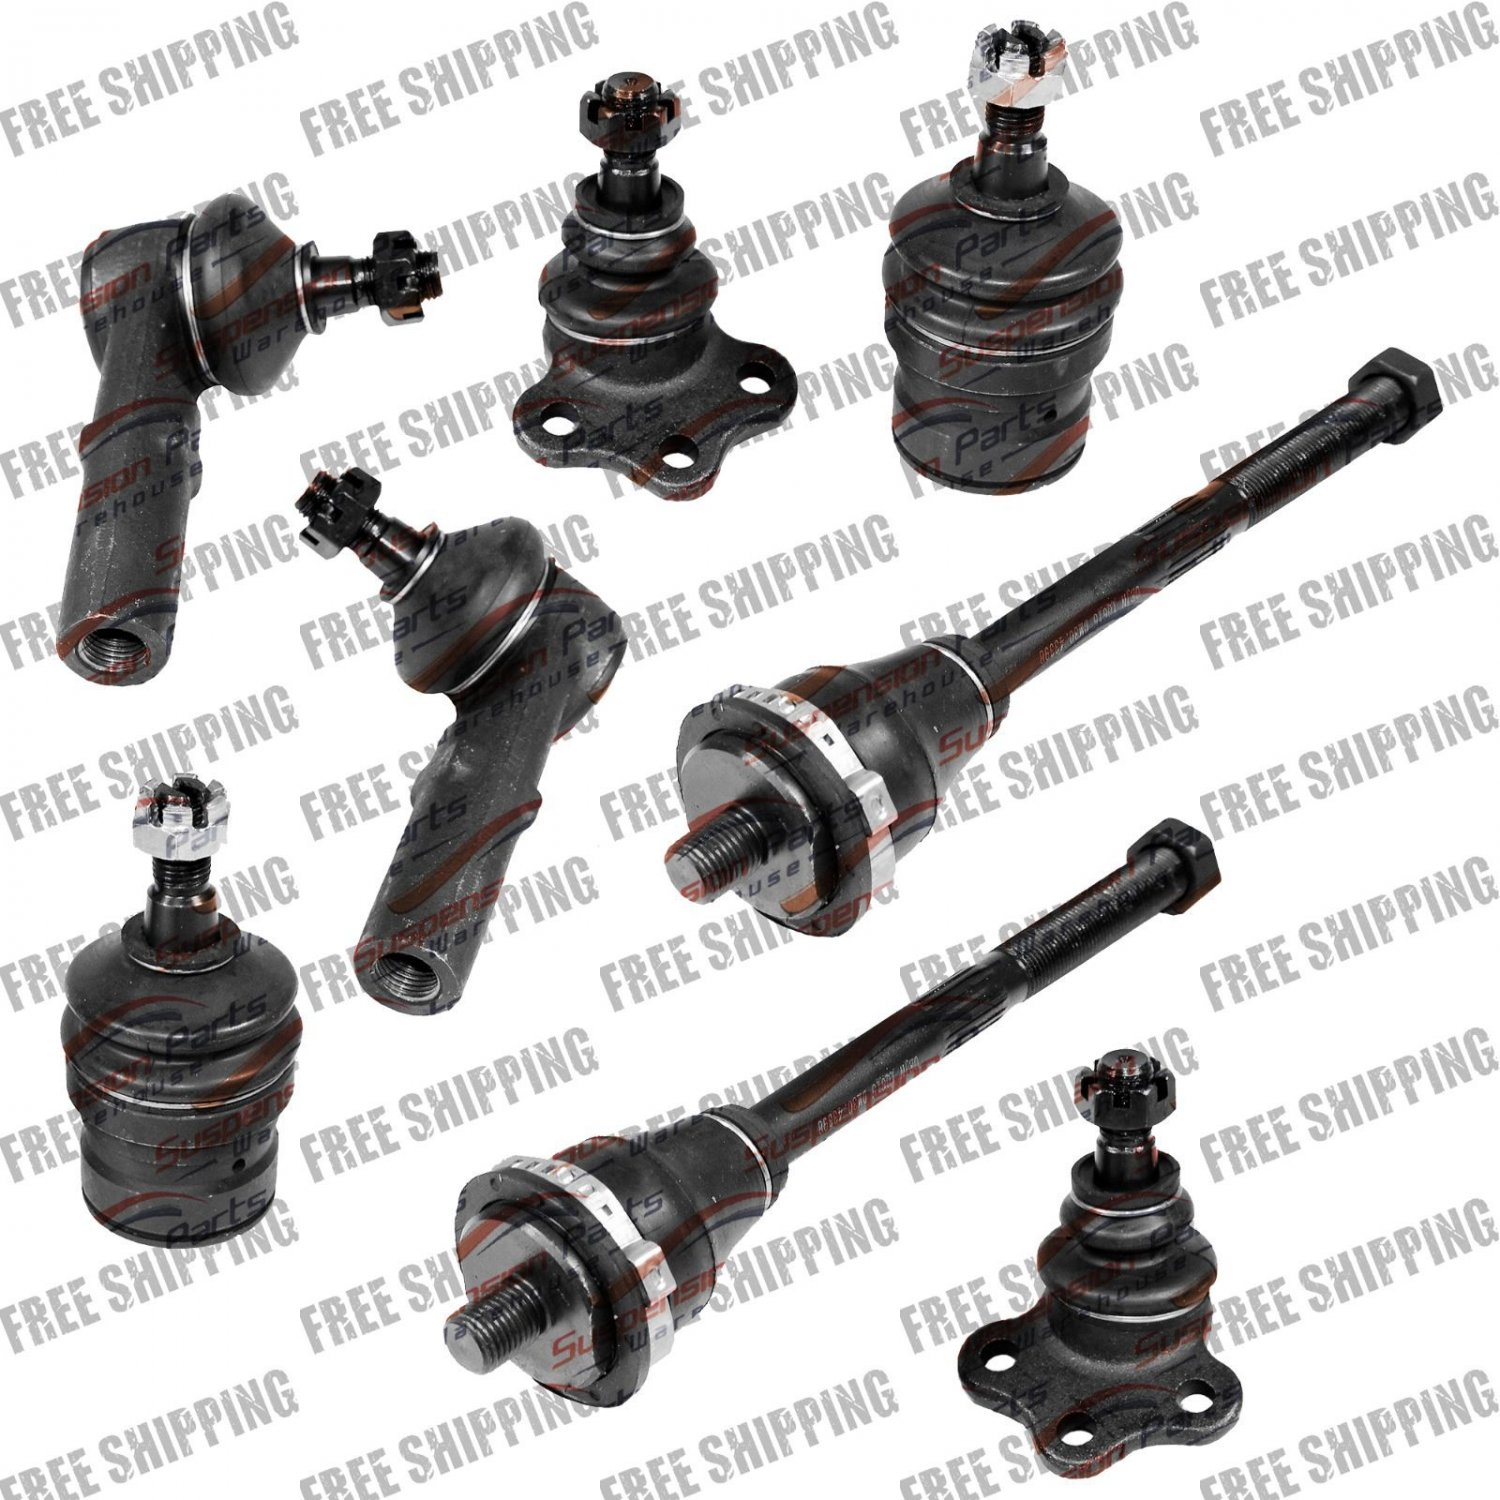 New Steering Front Set Tie Rod & Ball Joint For Dakota 97-99 Durango 98-99 4wd